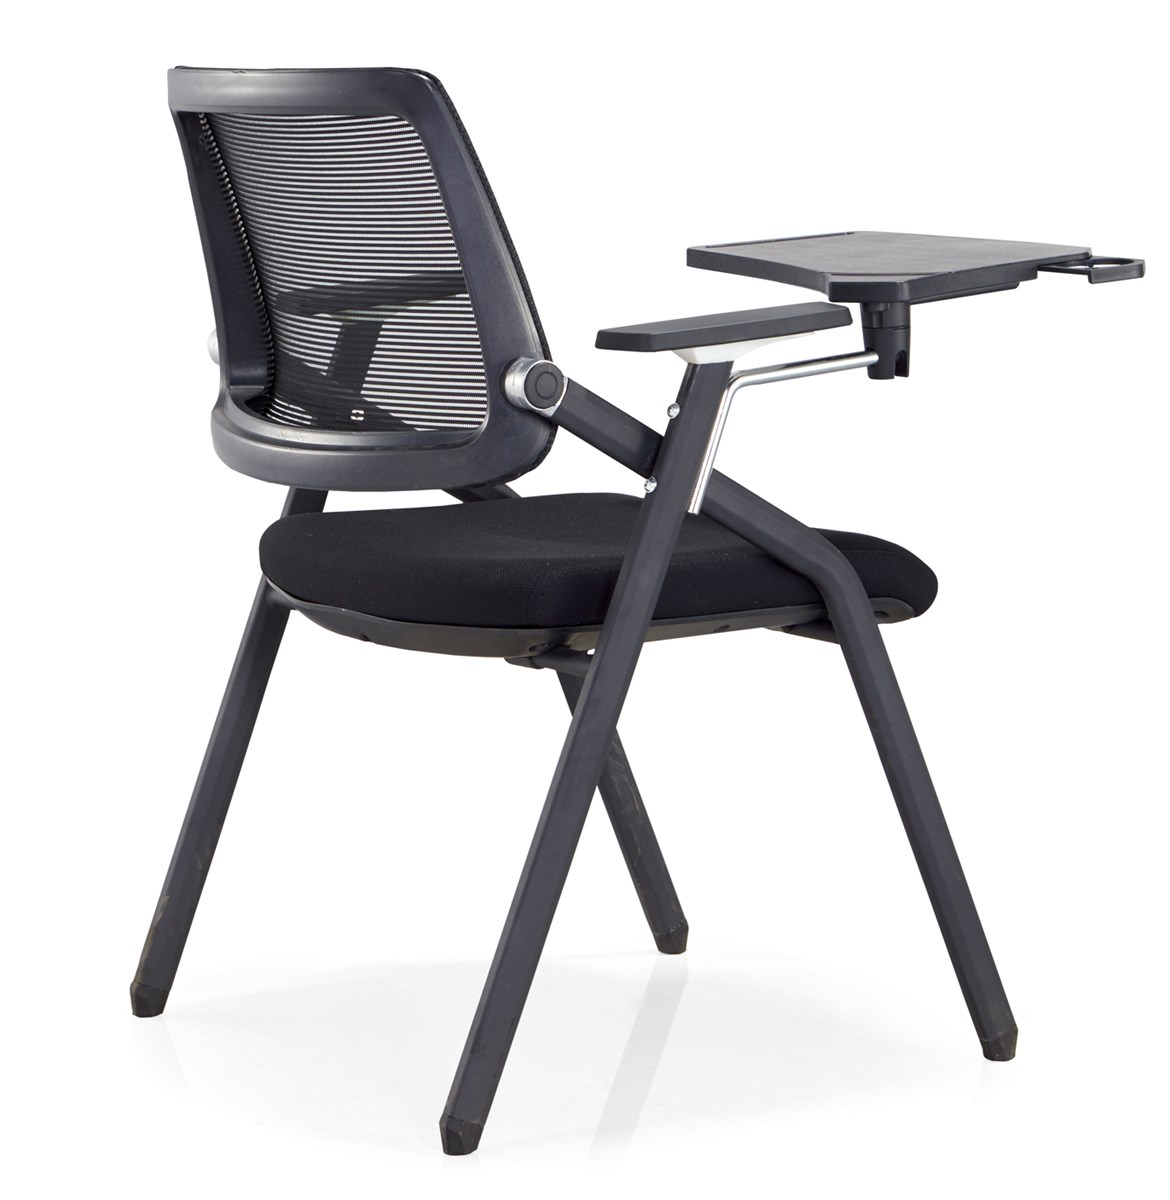 Office furniture training room mesh chair with writing pad